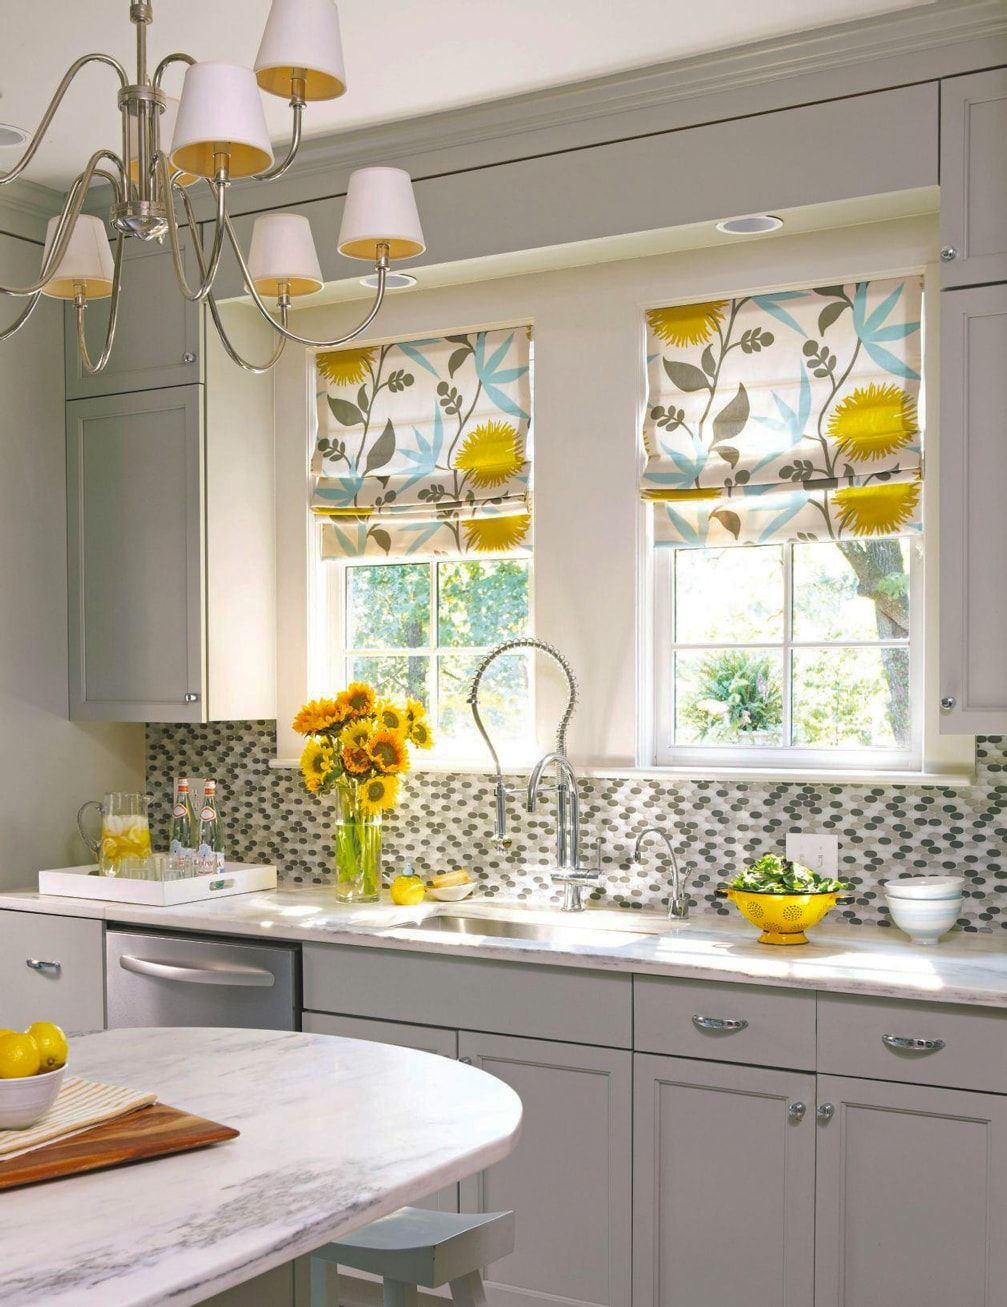 Superb Small Kitchen Update: Modern Retro Material For Roman Shades.